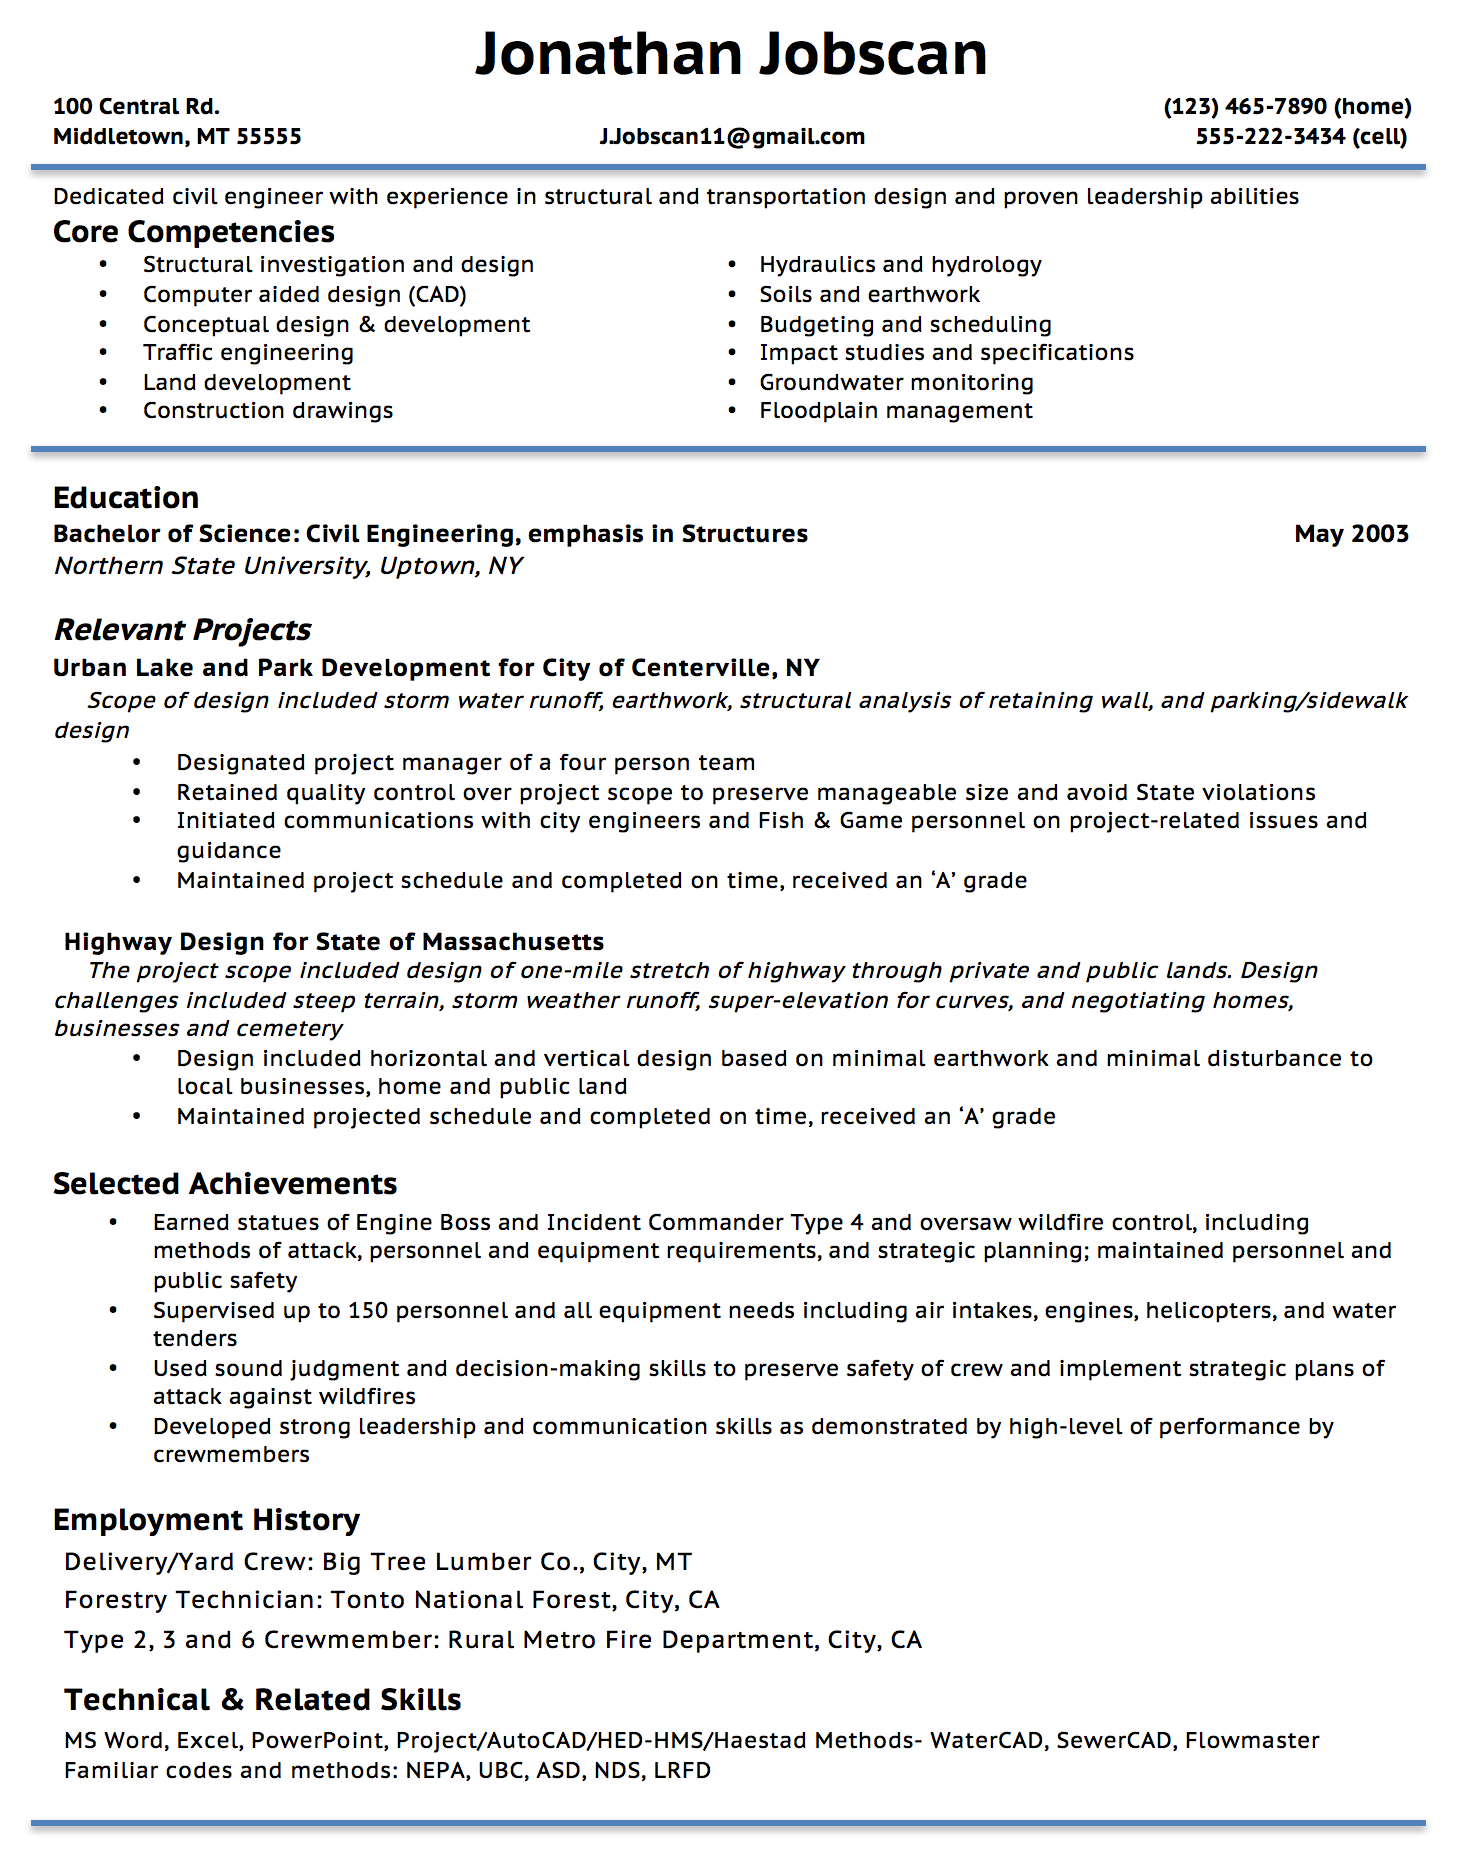 Picnictoimpeachus  Ravishing Resume Writing Guide  Jobscan With Outstanding Example Of A Functional Resume Format With Captivating Michigan Works Resume Also Architectural Resume In Addition Free Resume Sample And Grant Writer Resume As Well As Resume Writing Jobs Additionally Medical Office Assistant Resume From Jobscanco With Picnictoimpeachus  Outstanding Resume Writing Guide  Jobscan With Captivating Example Of A Functional Resume Format And Ravishing Michigan Works Resume Also Architectural Resume In Addition Free Resume Sample From Jobscanco